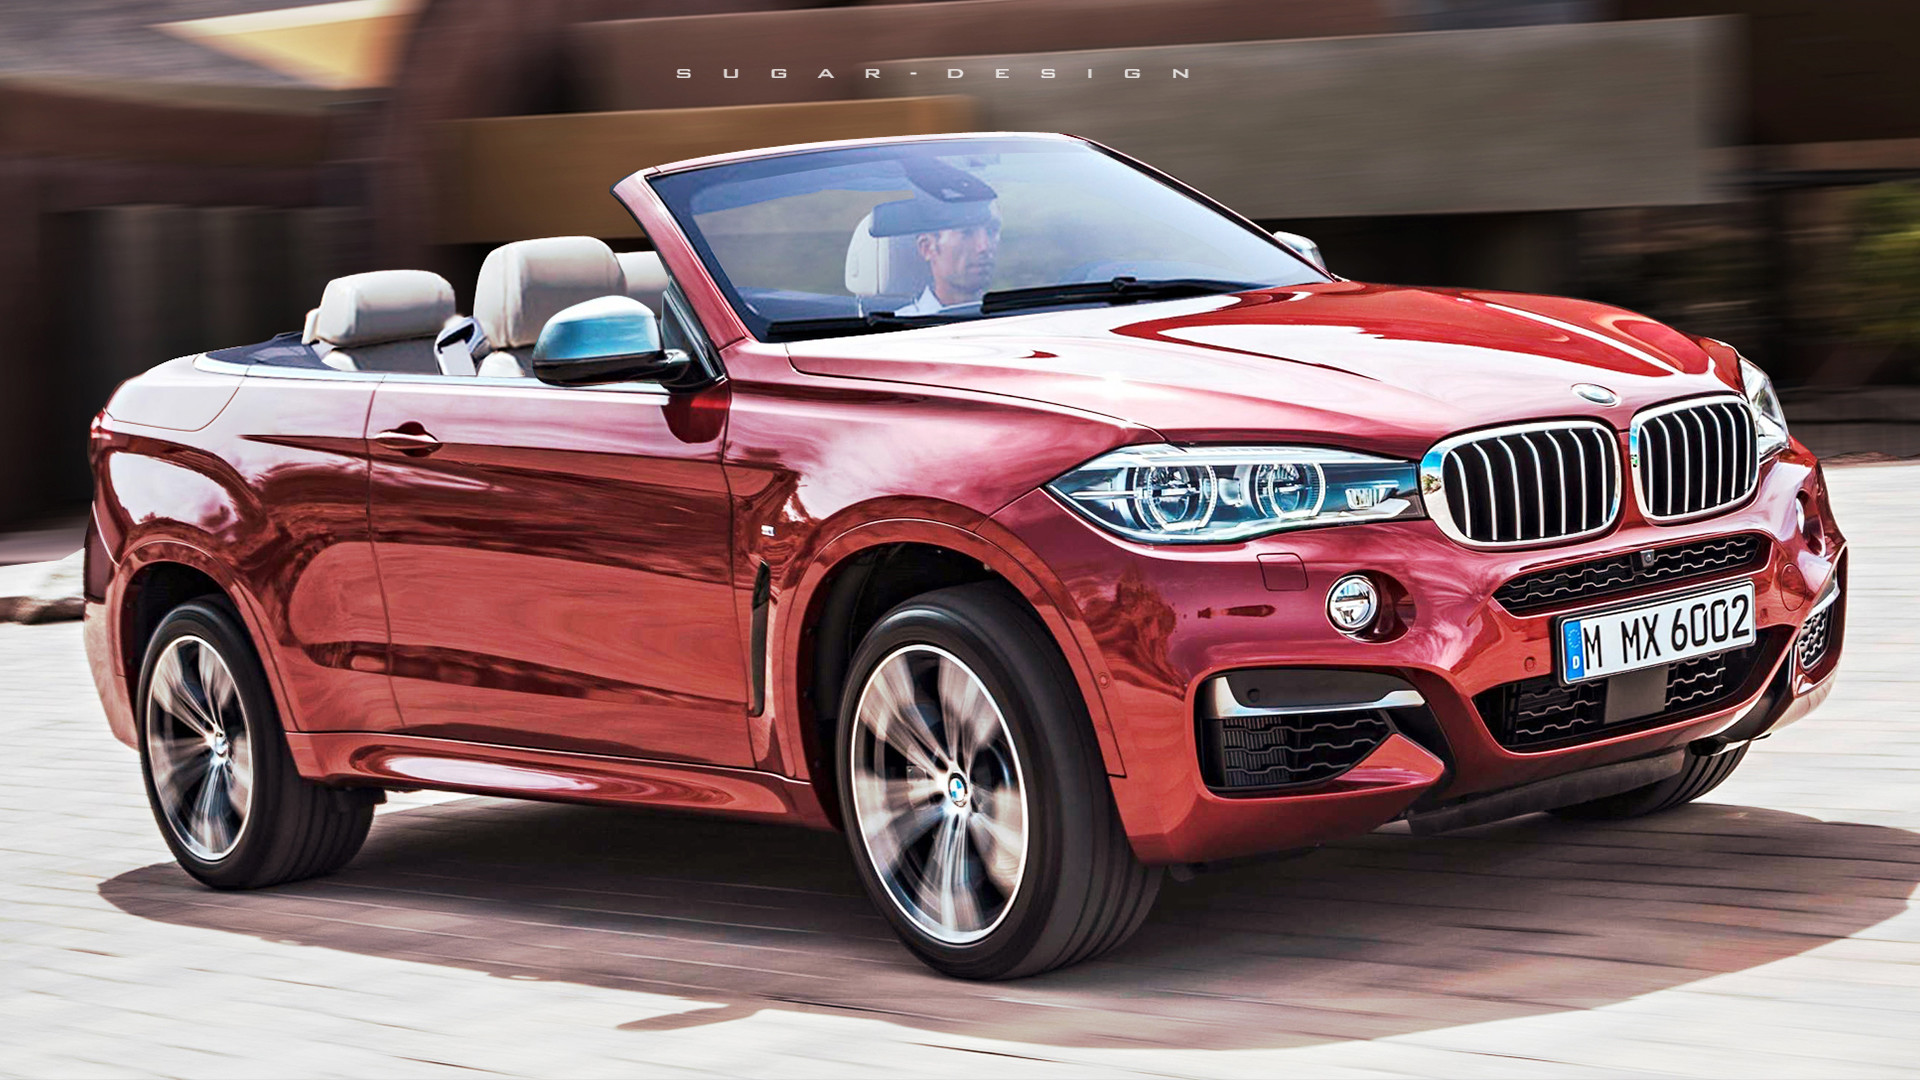 Sugar Chow Bmw X6 Convertible